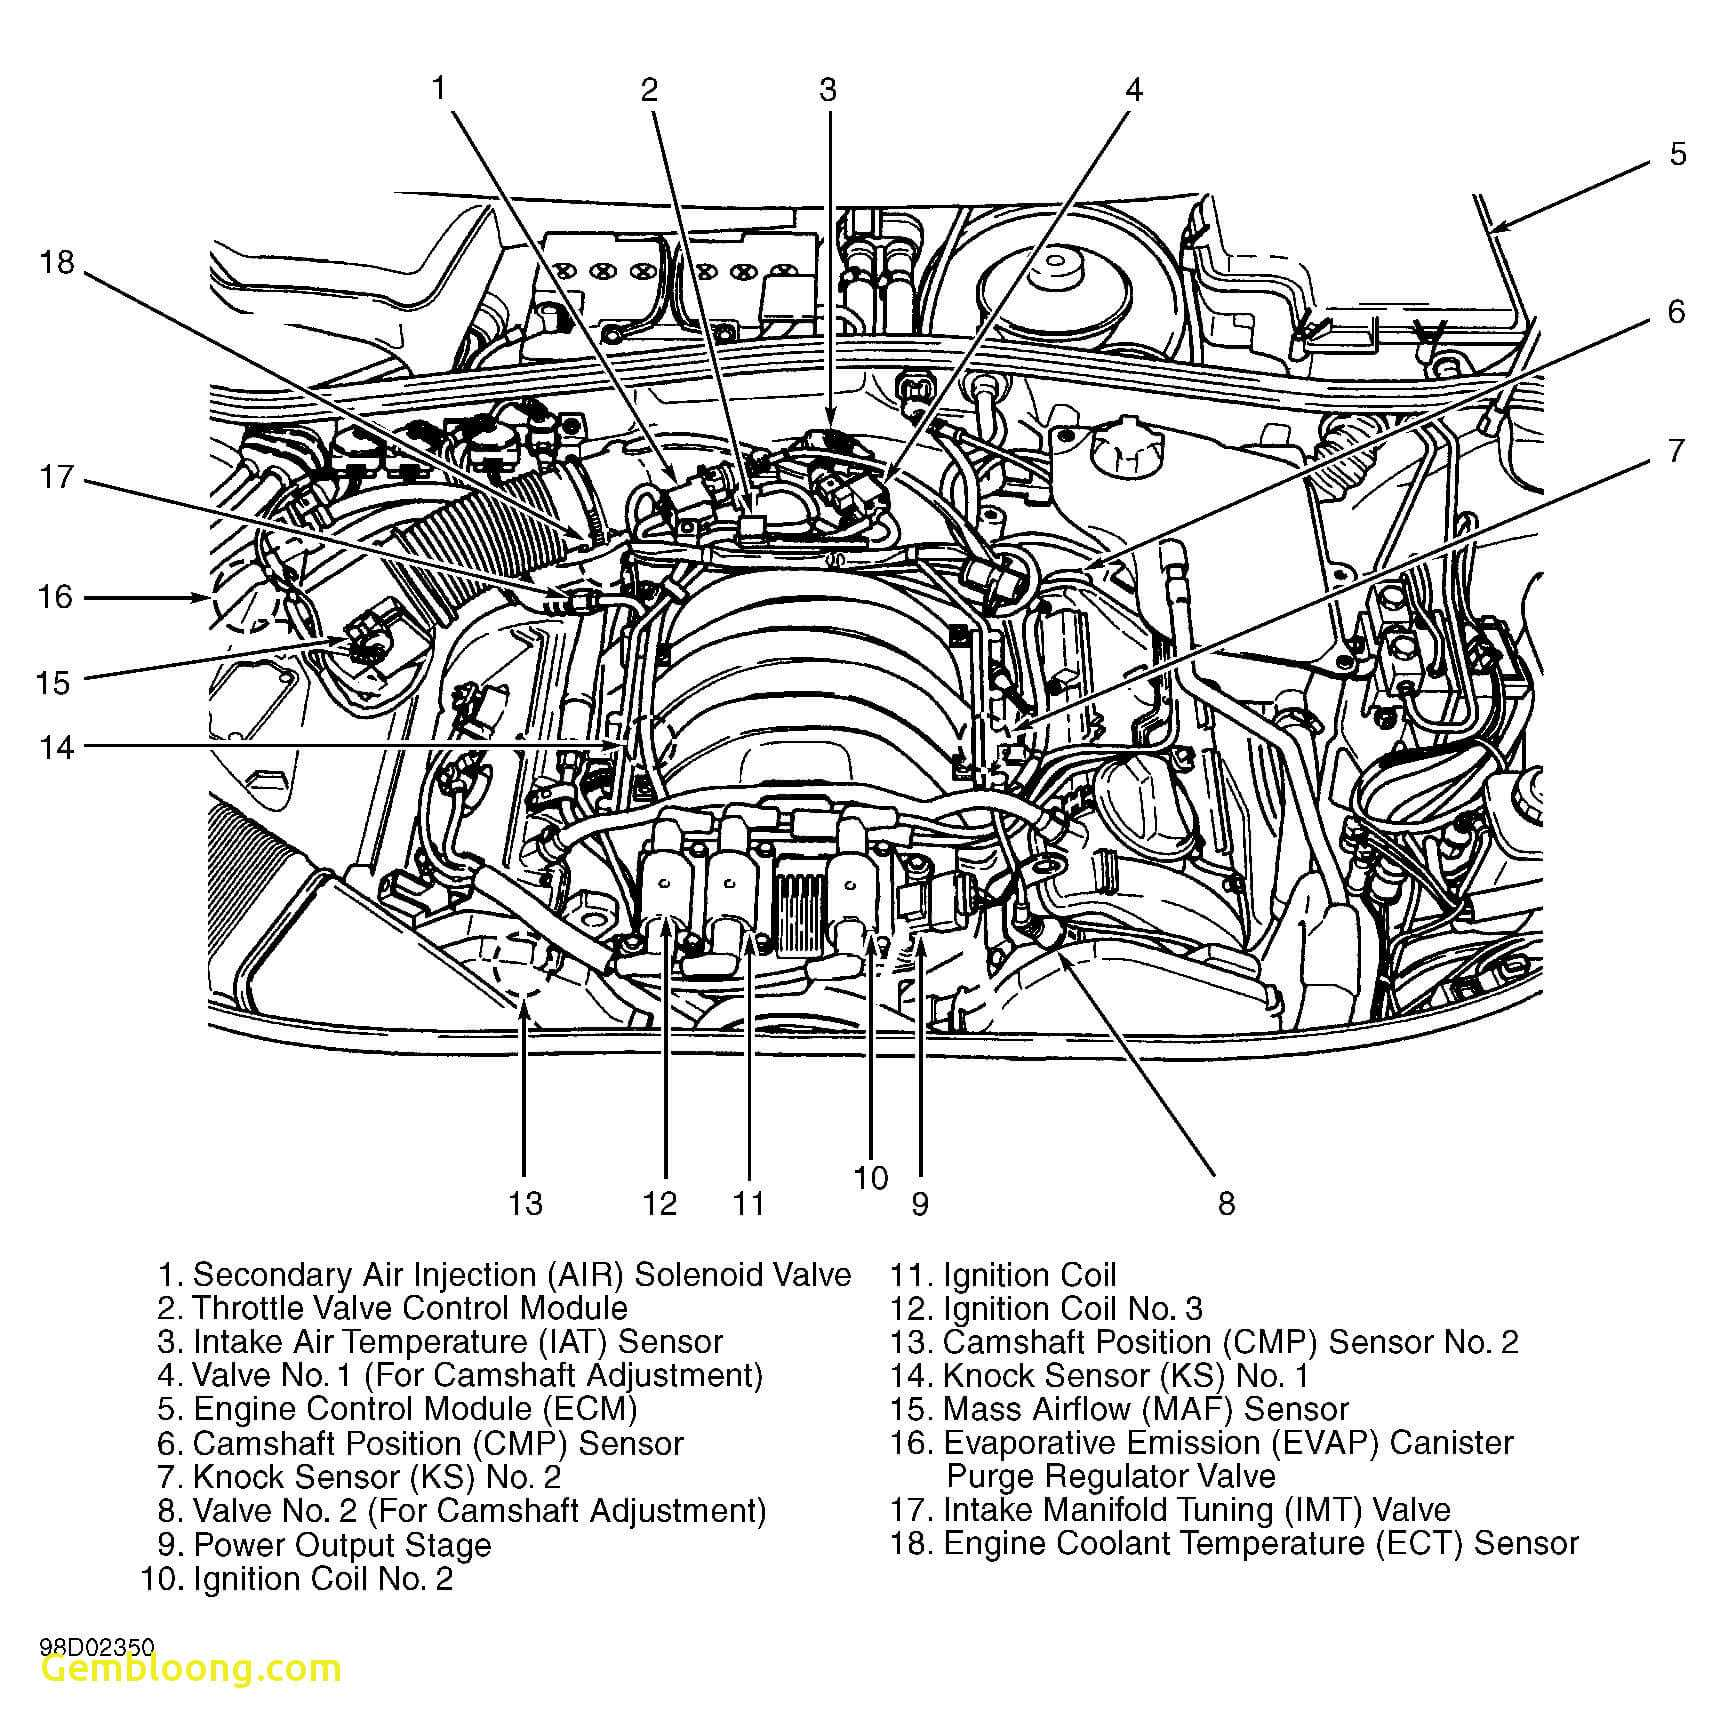 Chrysler 300 2 7 Engine Diagram Nocksenseur Wiring Diagrams Seat Metal A Seat Metal A Alcuoredeldiabete It